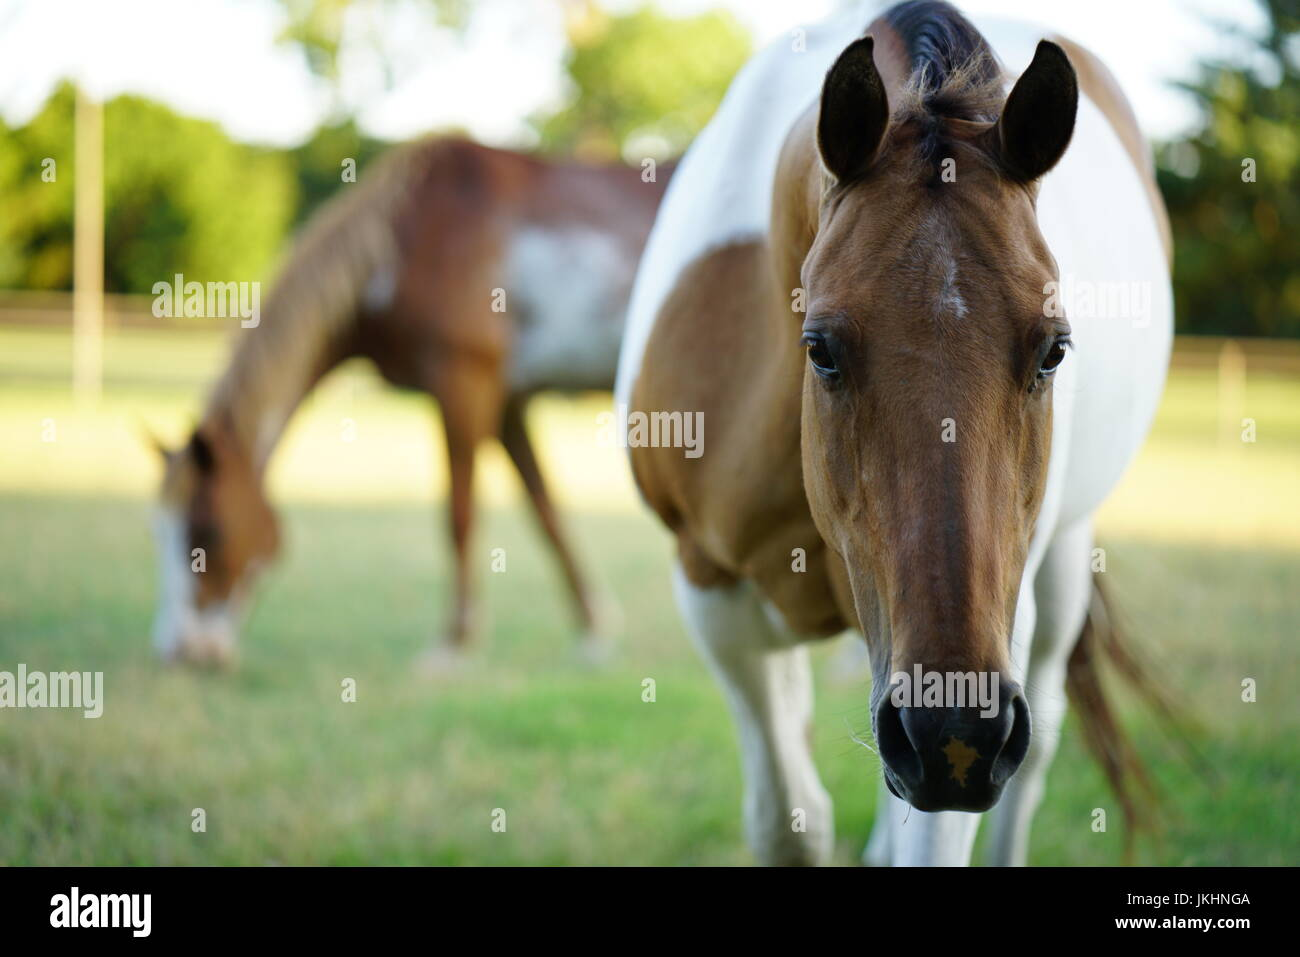 Horse staring into the camera while other grazes - Stock Image